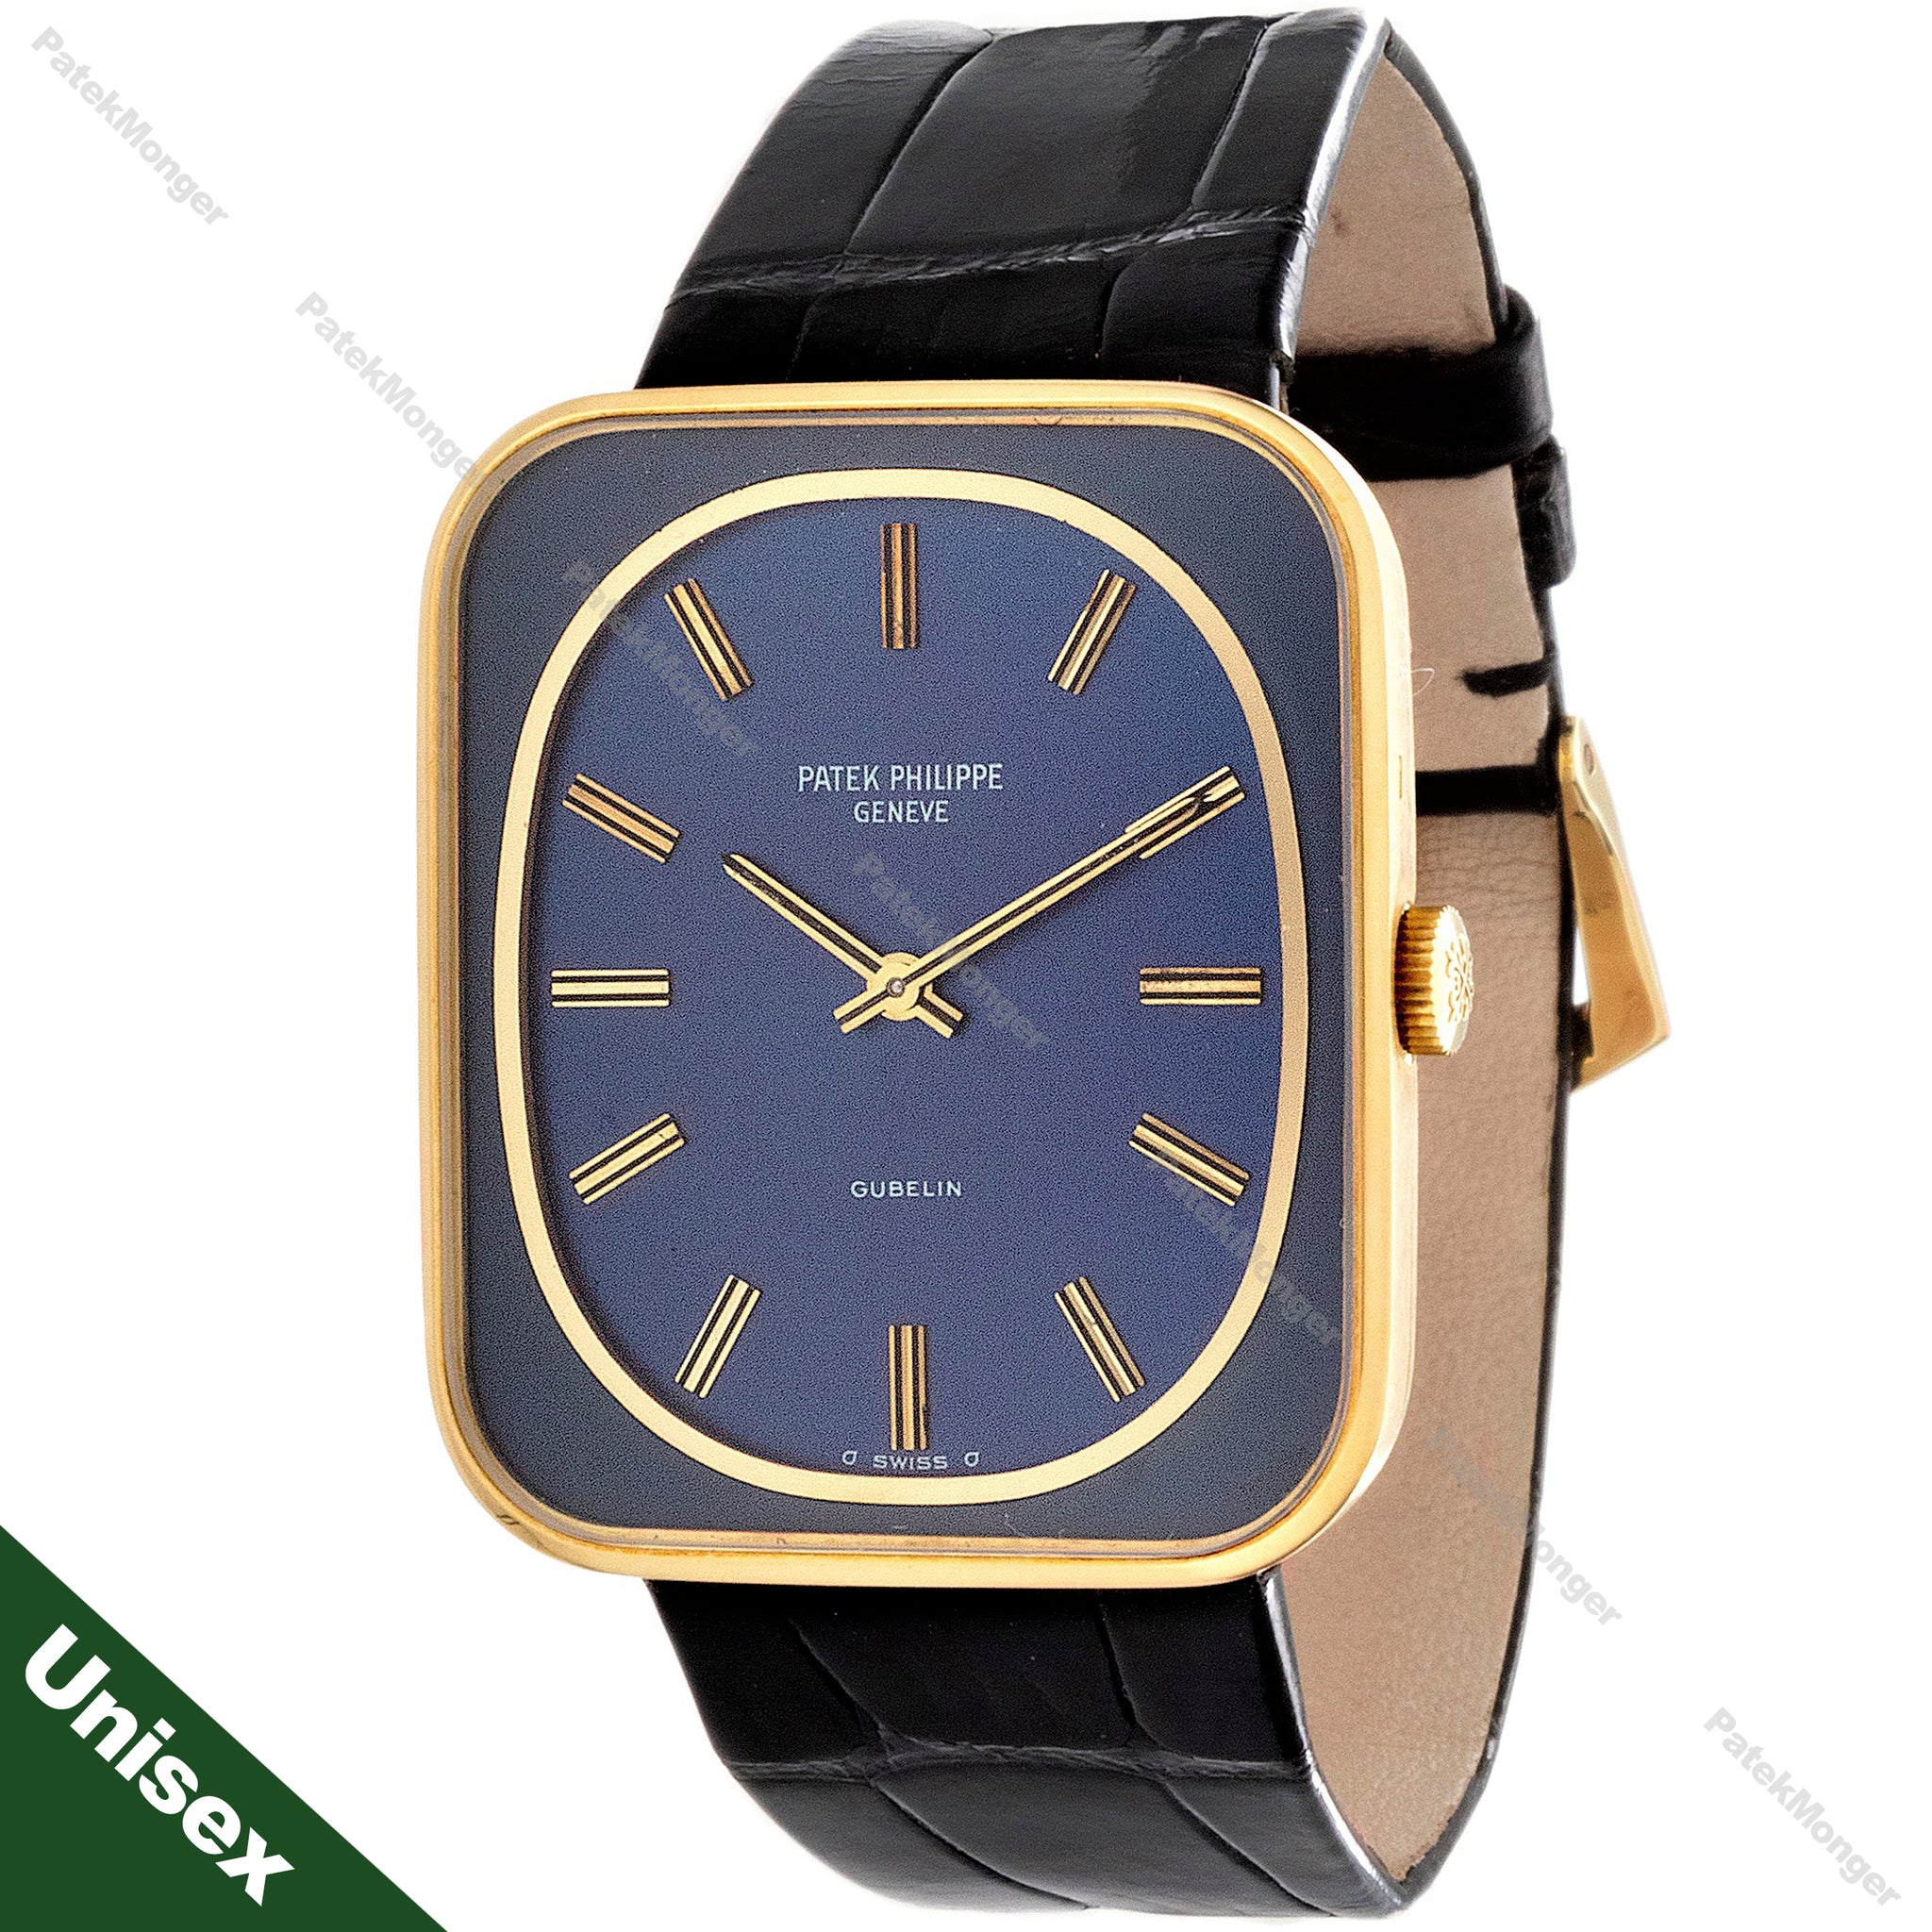 Patek Philippe 3582J Blue Dial Gondolo Watch